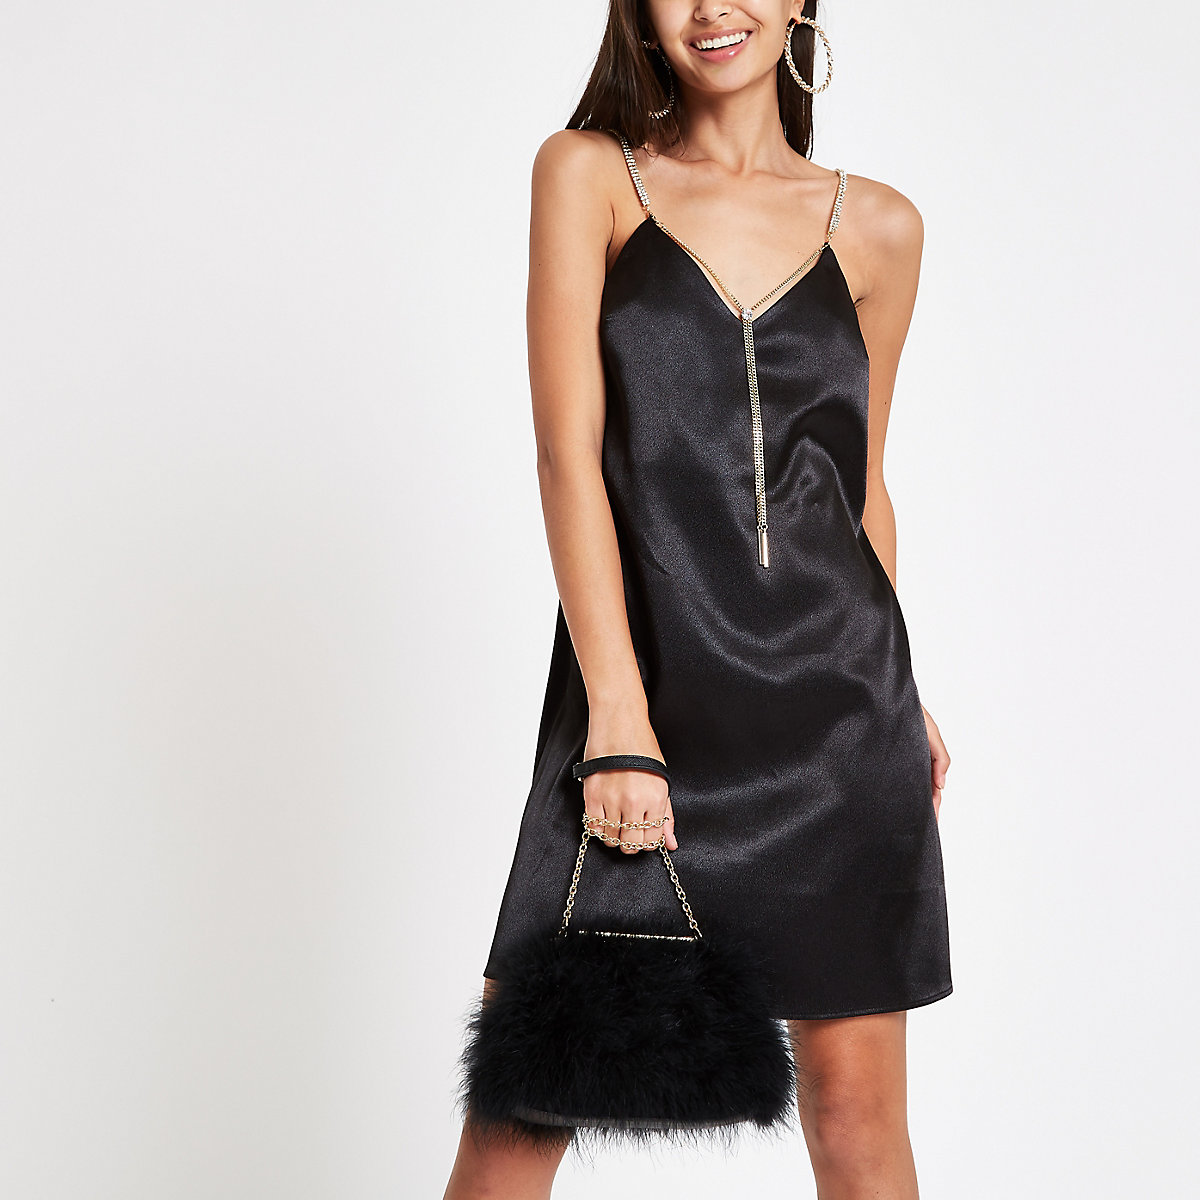 Black satin chain strap slip dress